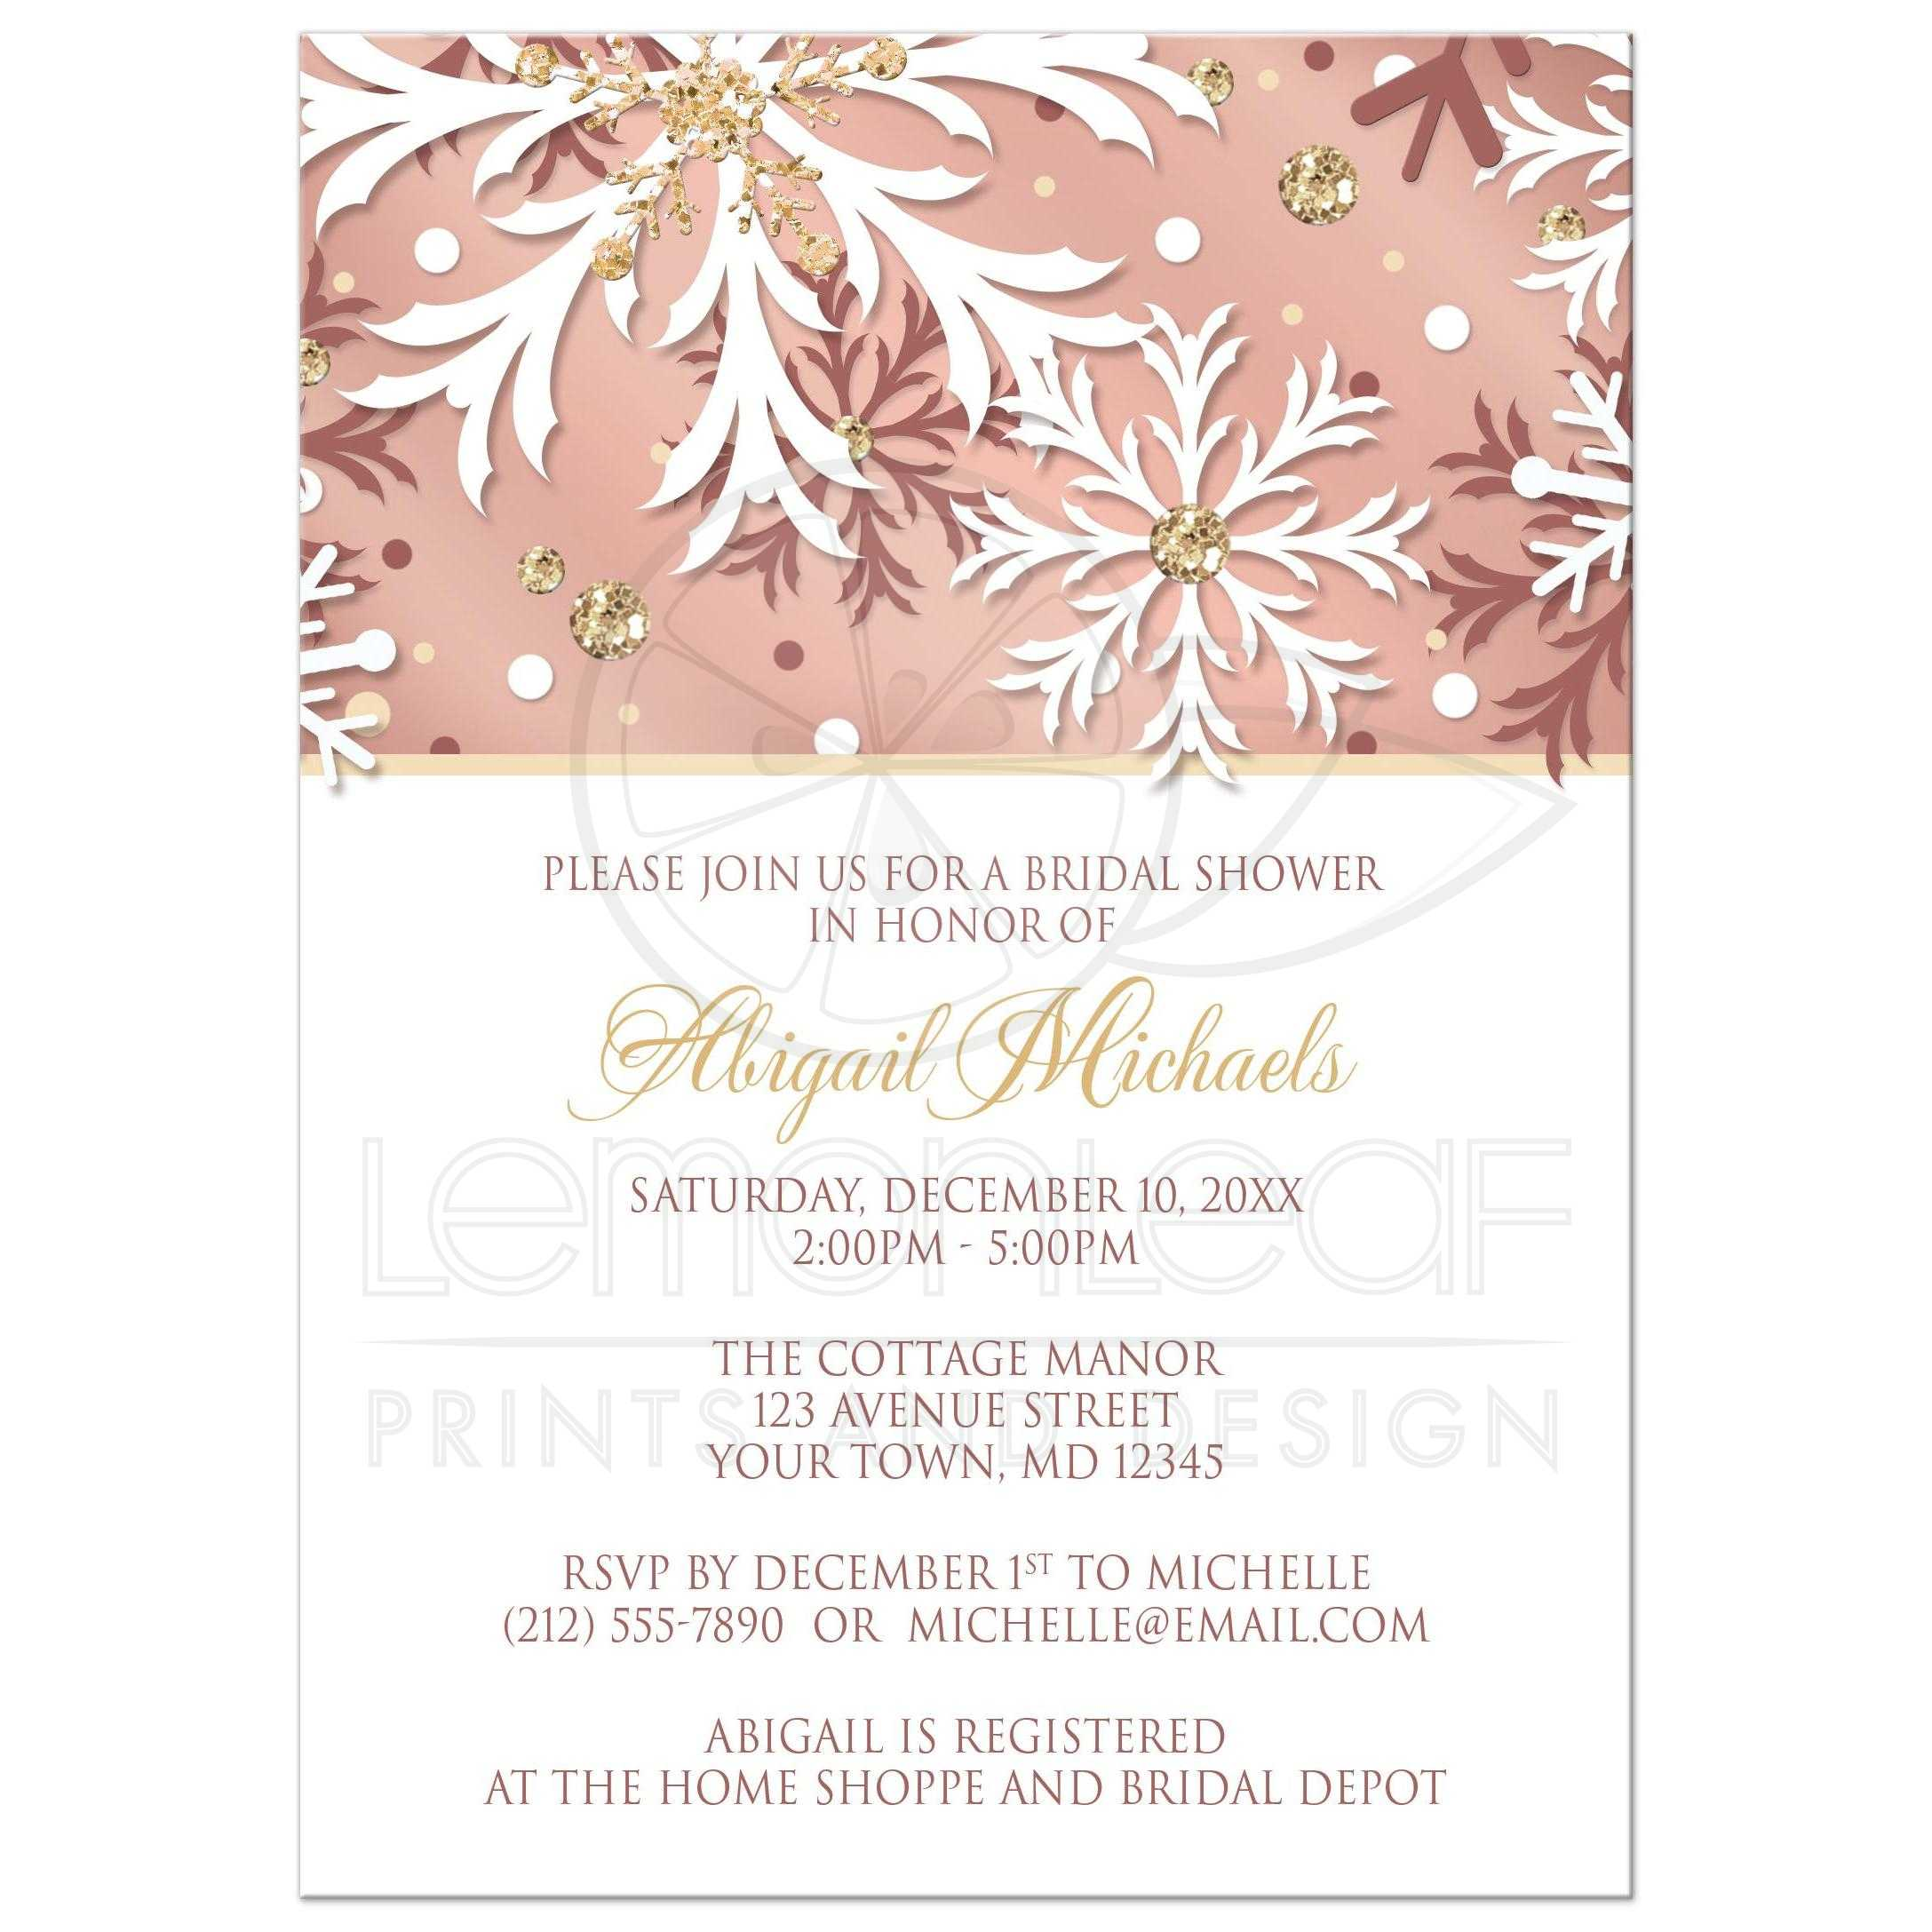 bridal shower invitations rose gold winter snowflake - Rose Gold Wedding Invitations